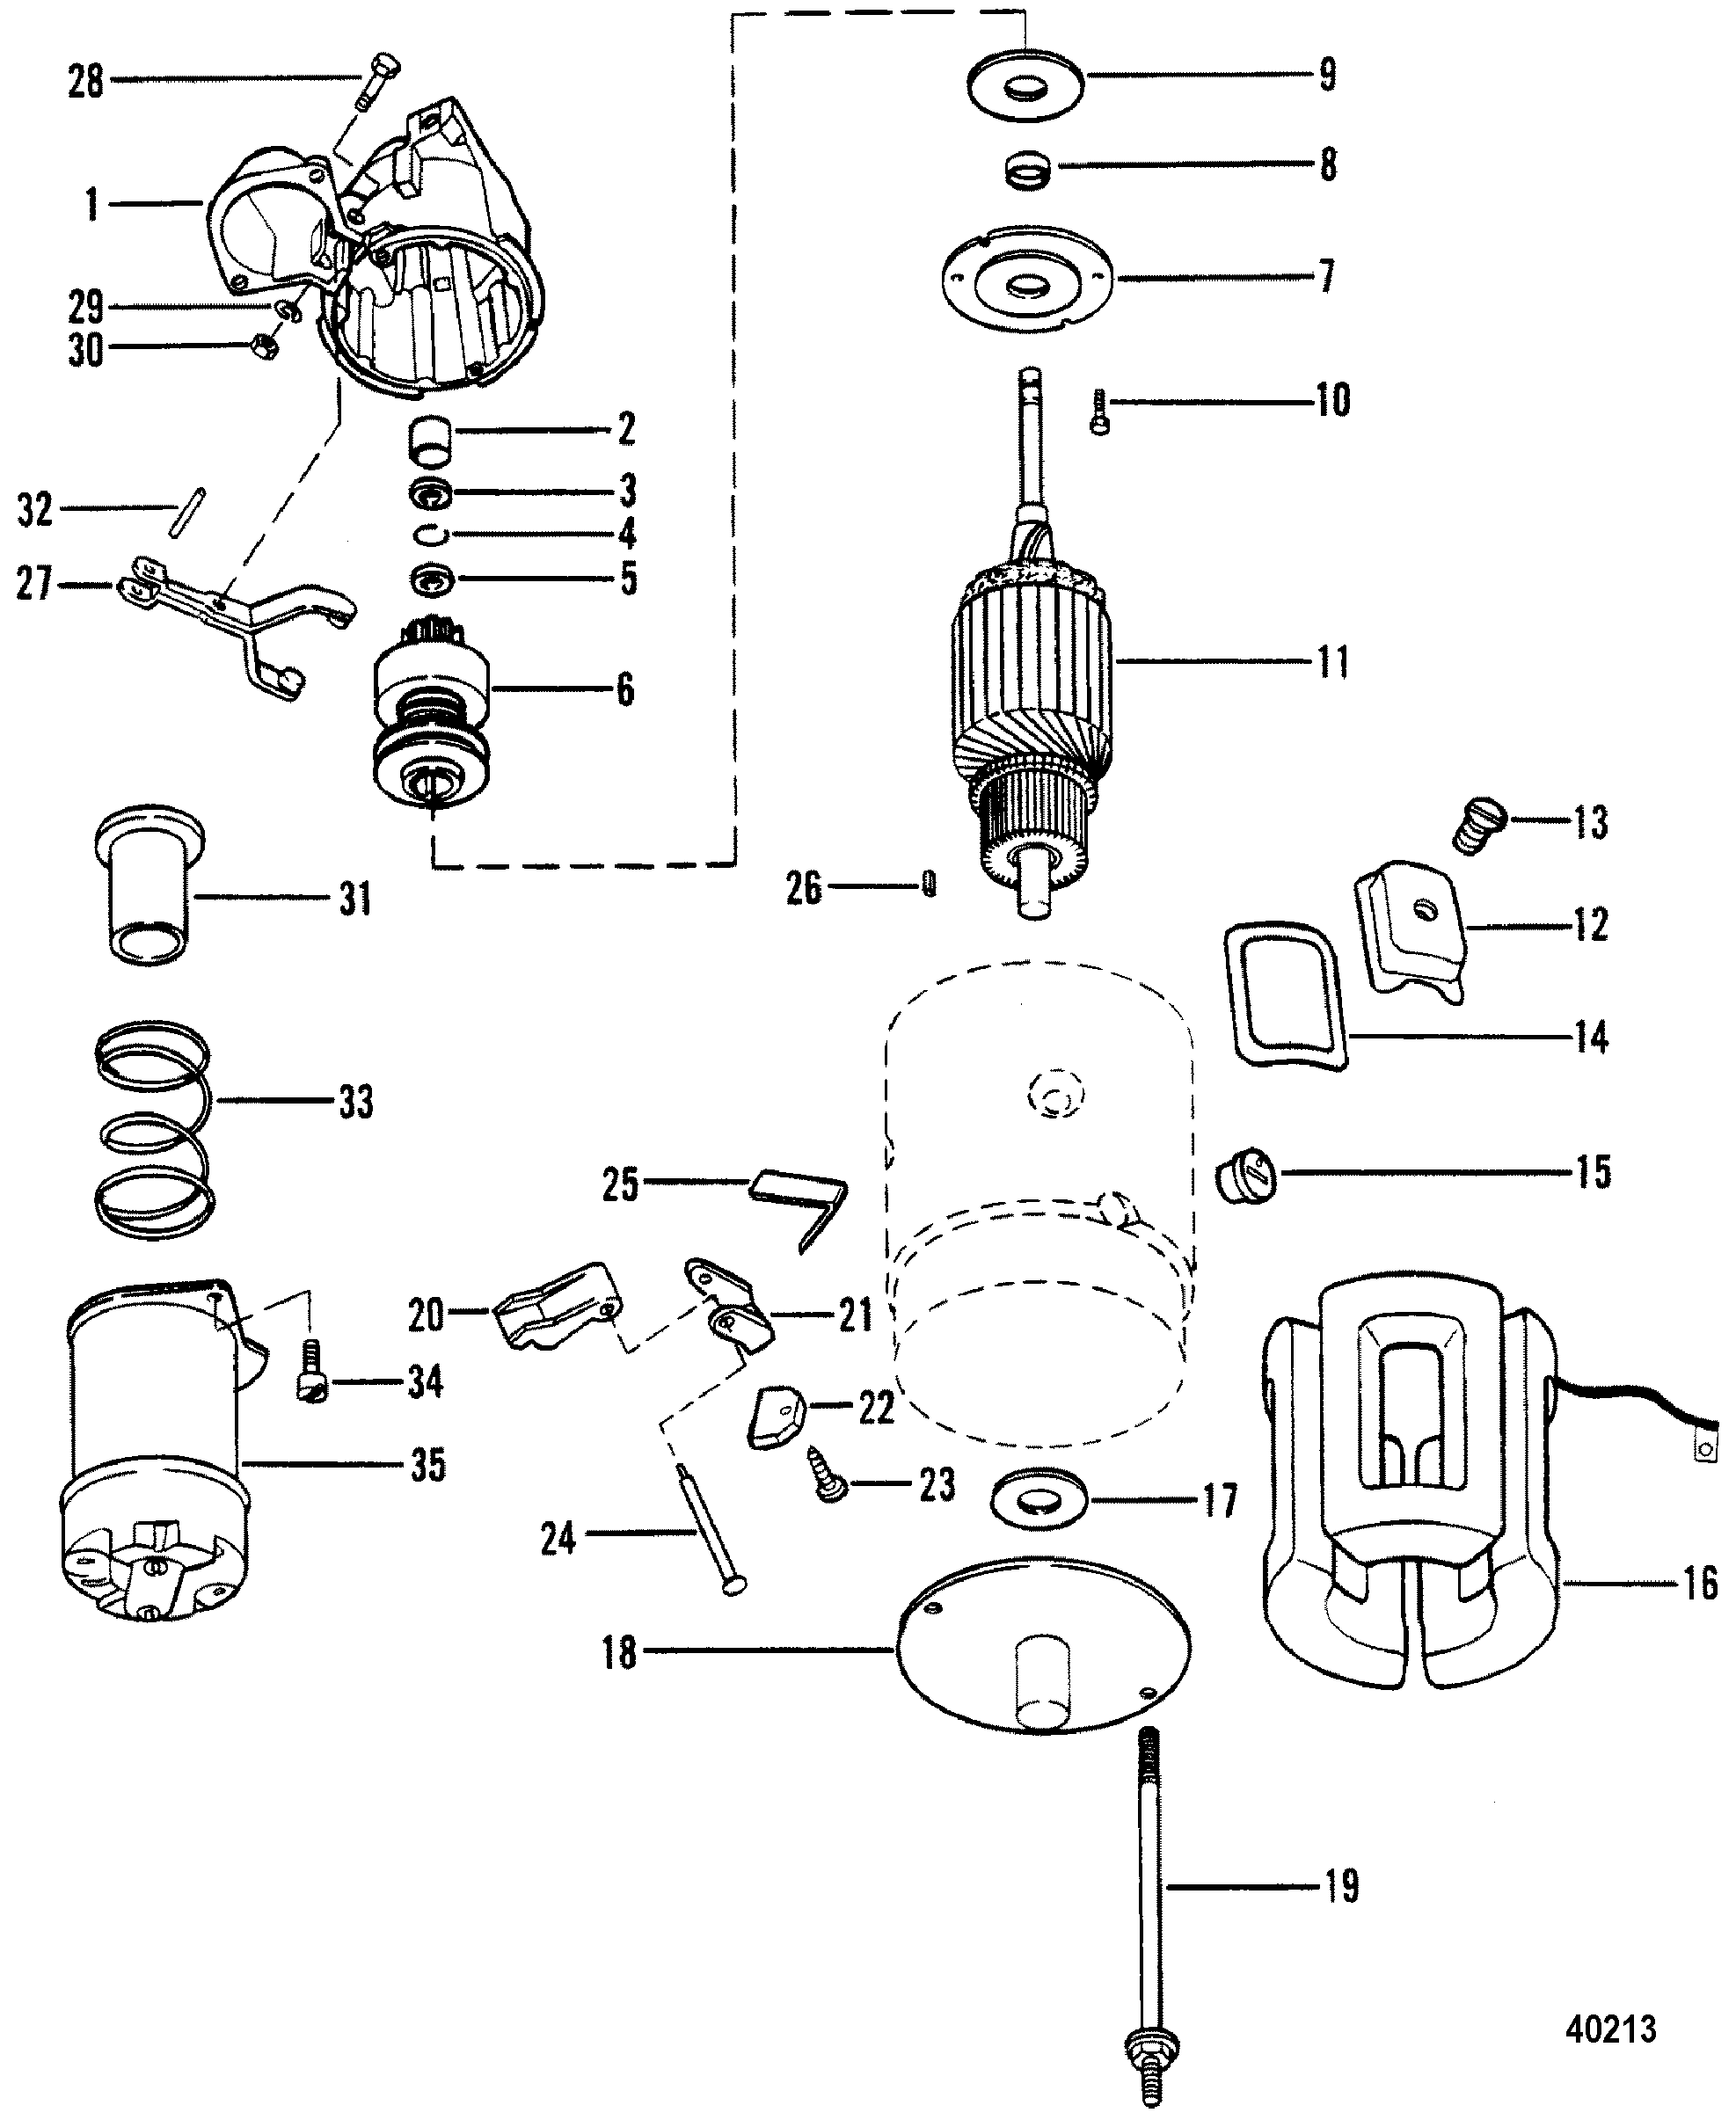 STARTER MOTOR ASSEMBLY FOR MERCRUISER 470 ENGINE